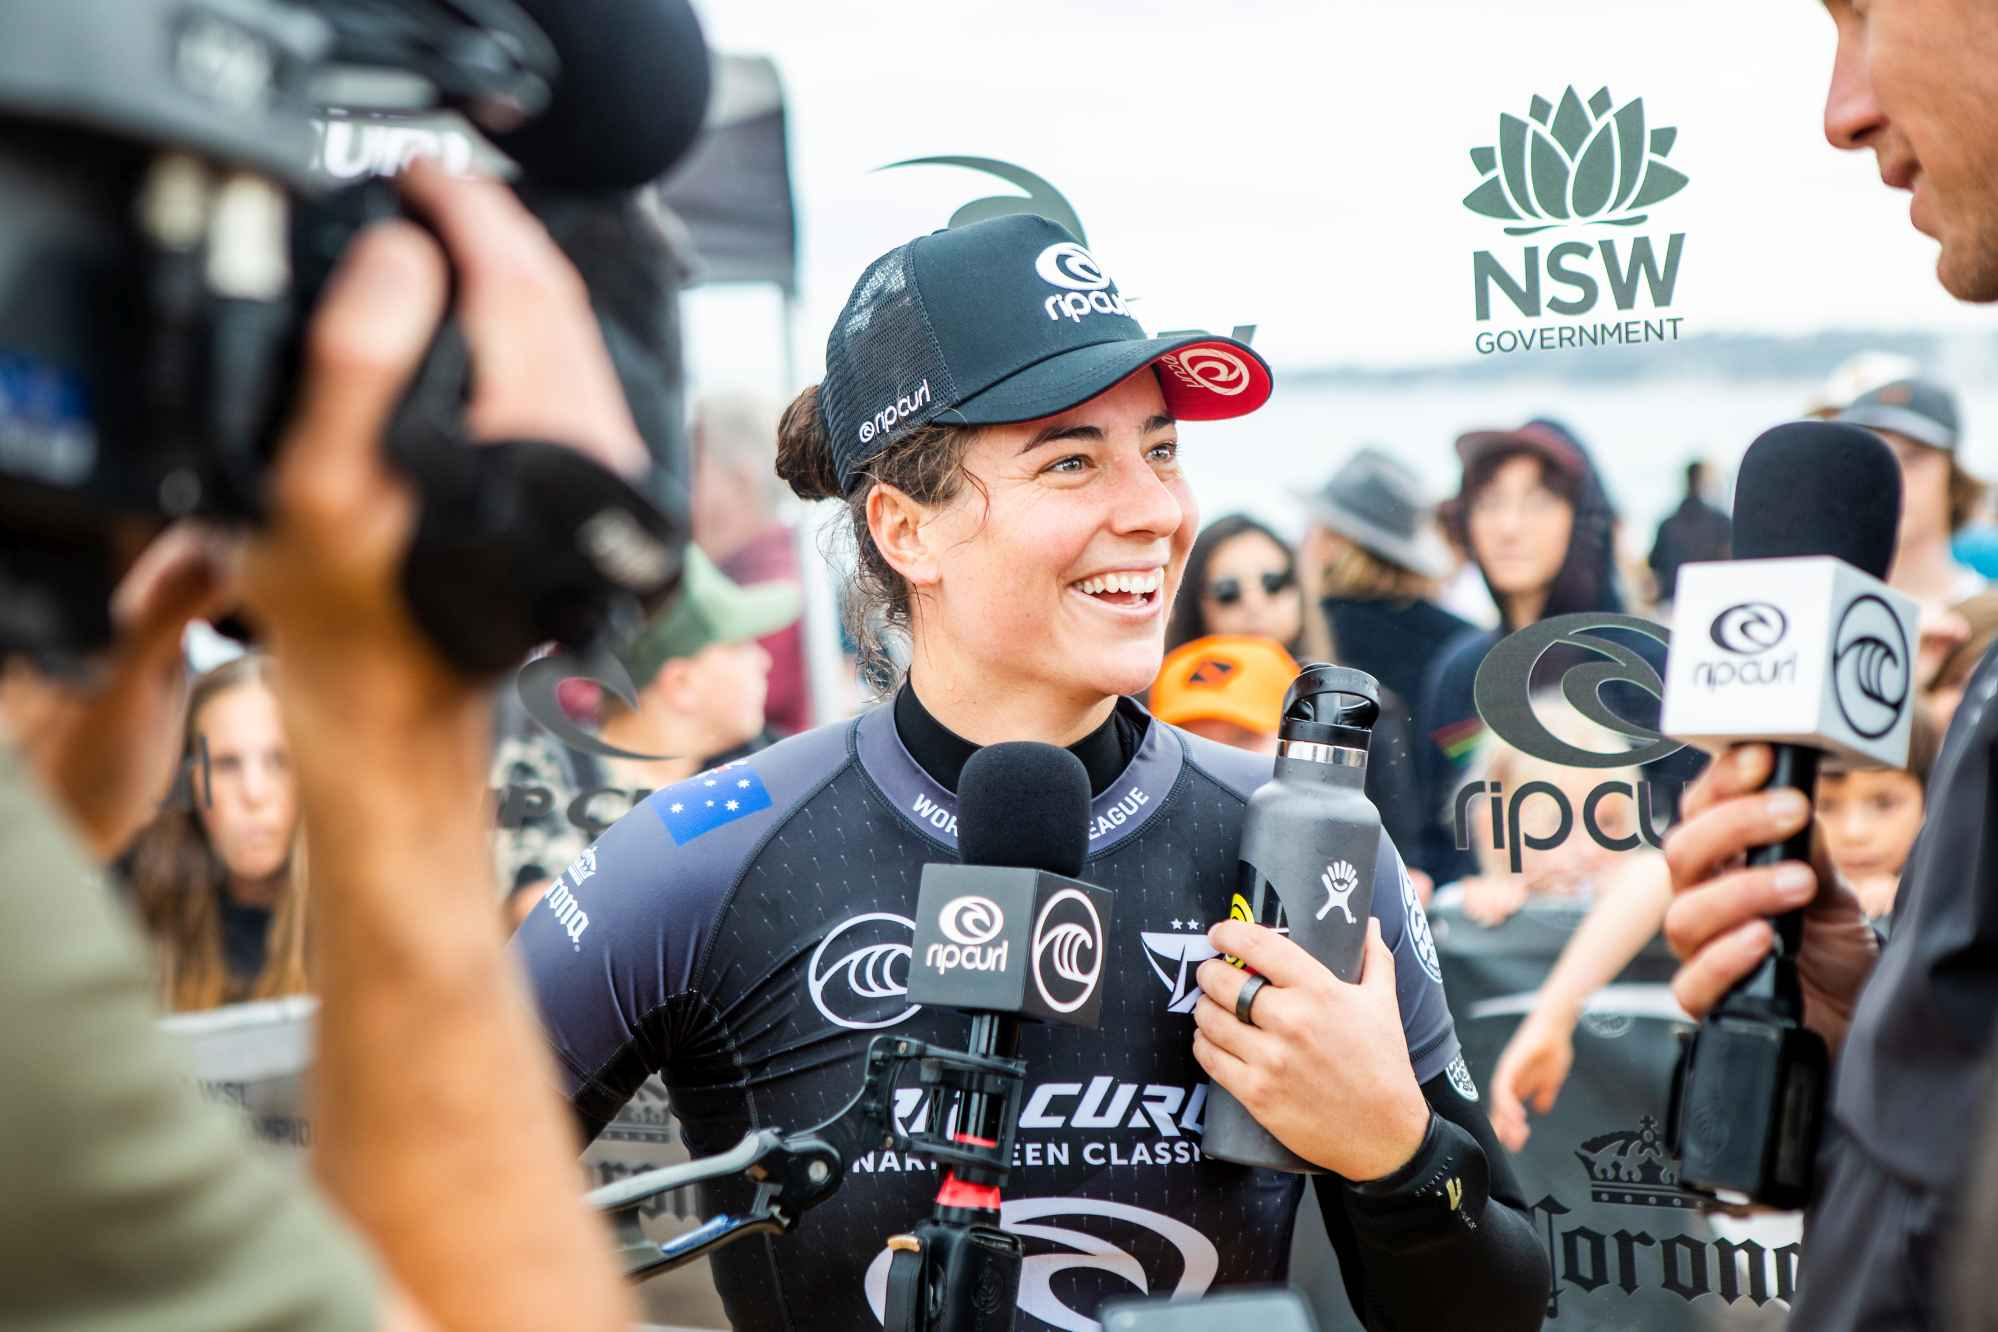 wsl rip curl narrabeen classic wright t8033NARRABEEN21miers